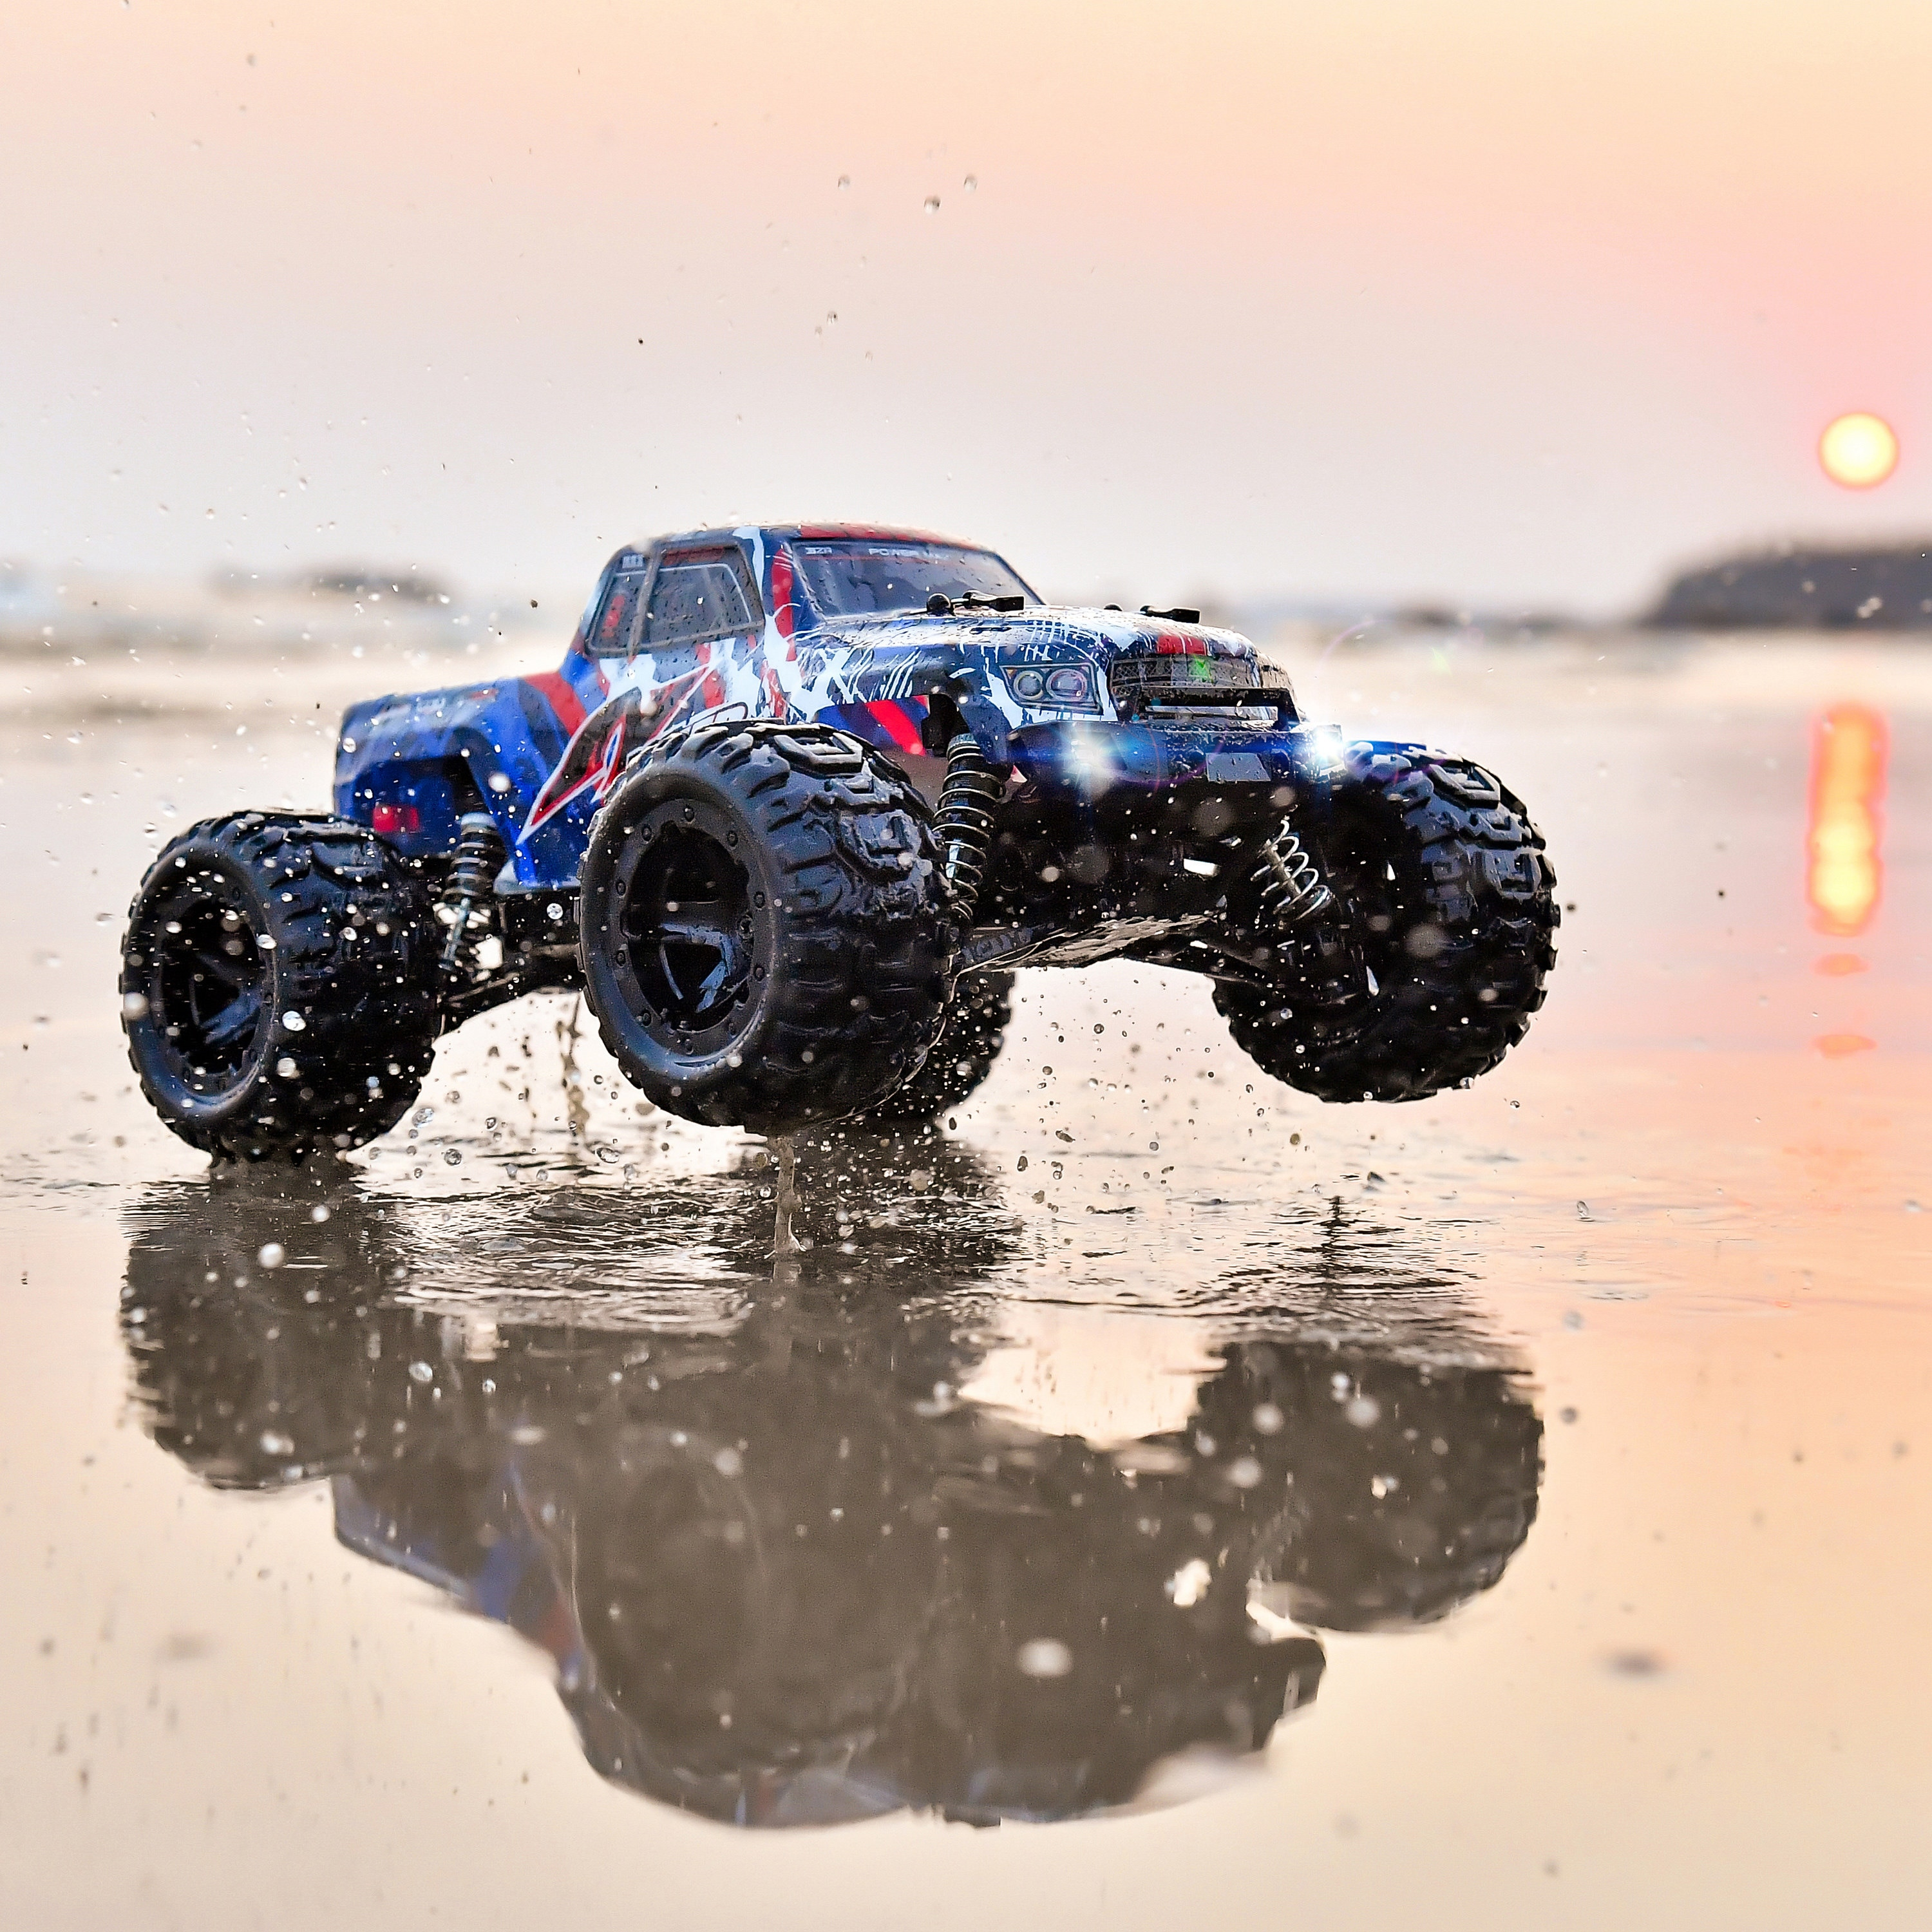 BEZGAR HM161 Hobby RC Car 1:16 All-Terrain 40Km/h Off-Road 4WD Remote Control Monster Truck Crawler with Battery for Kids Adults enlarge